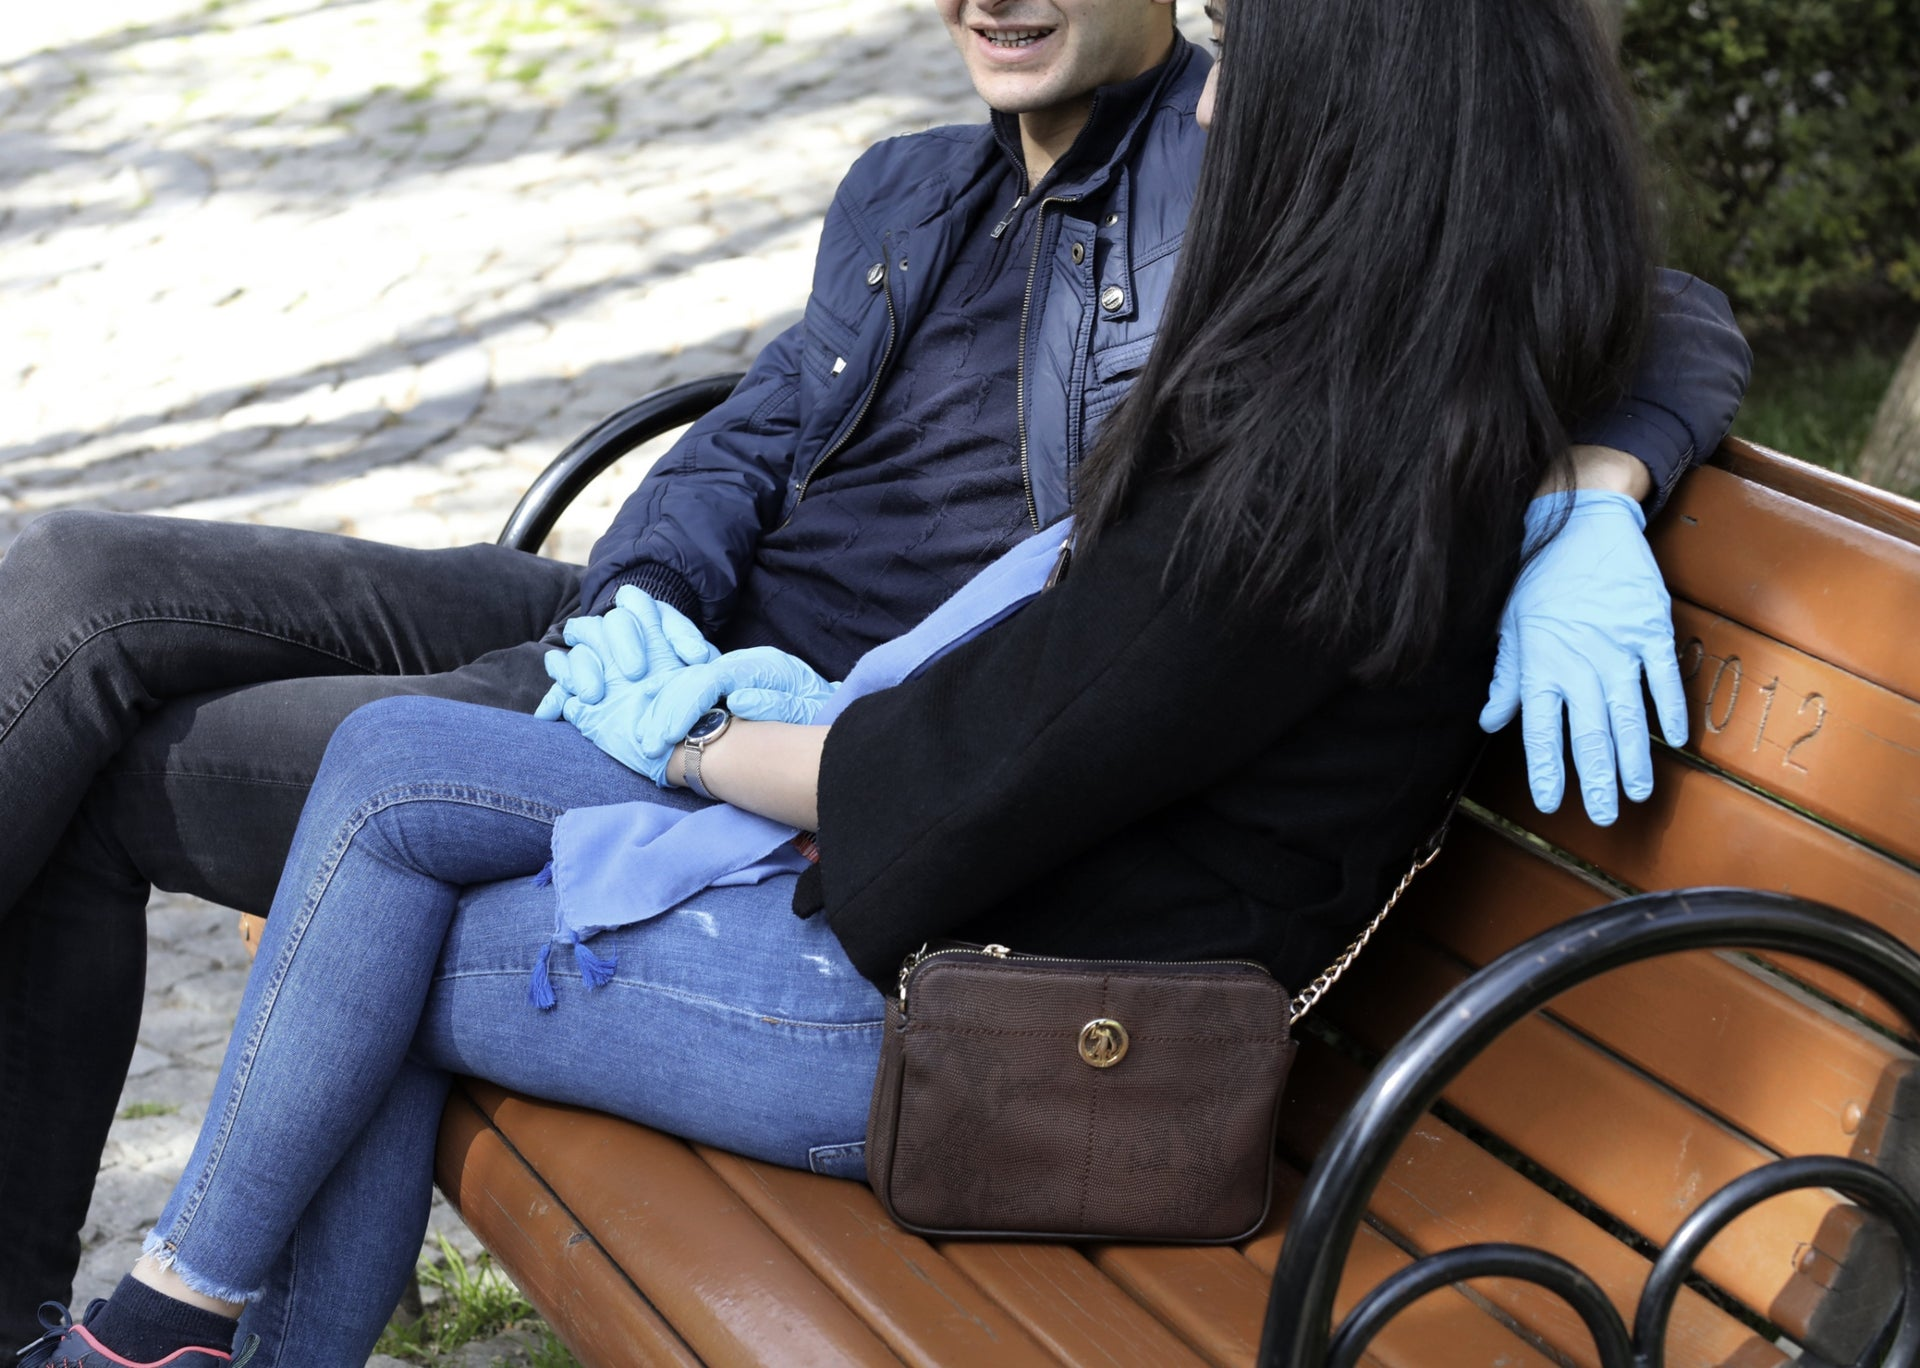 A couple wear protective gloves as they sit together in a public garden amid the coronavirus outbreak, in Ankara, Turkey.